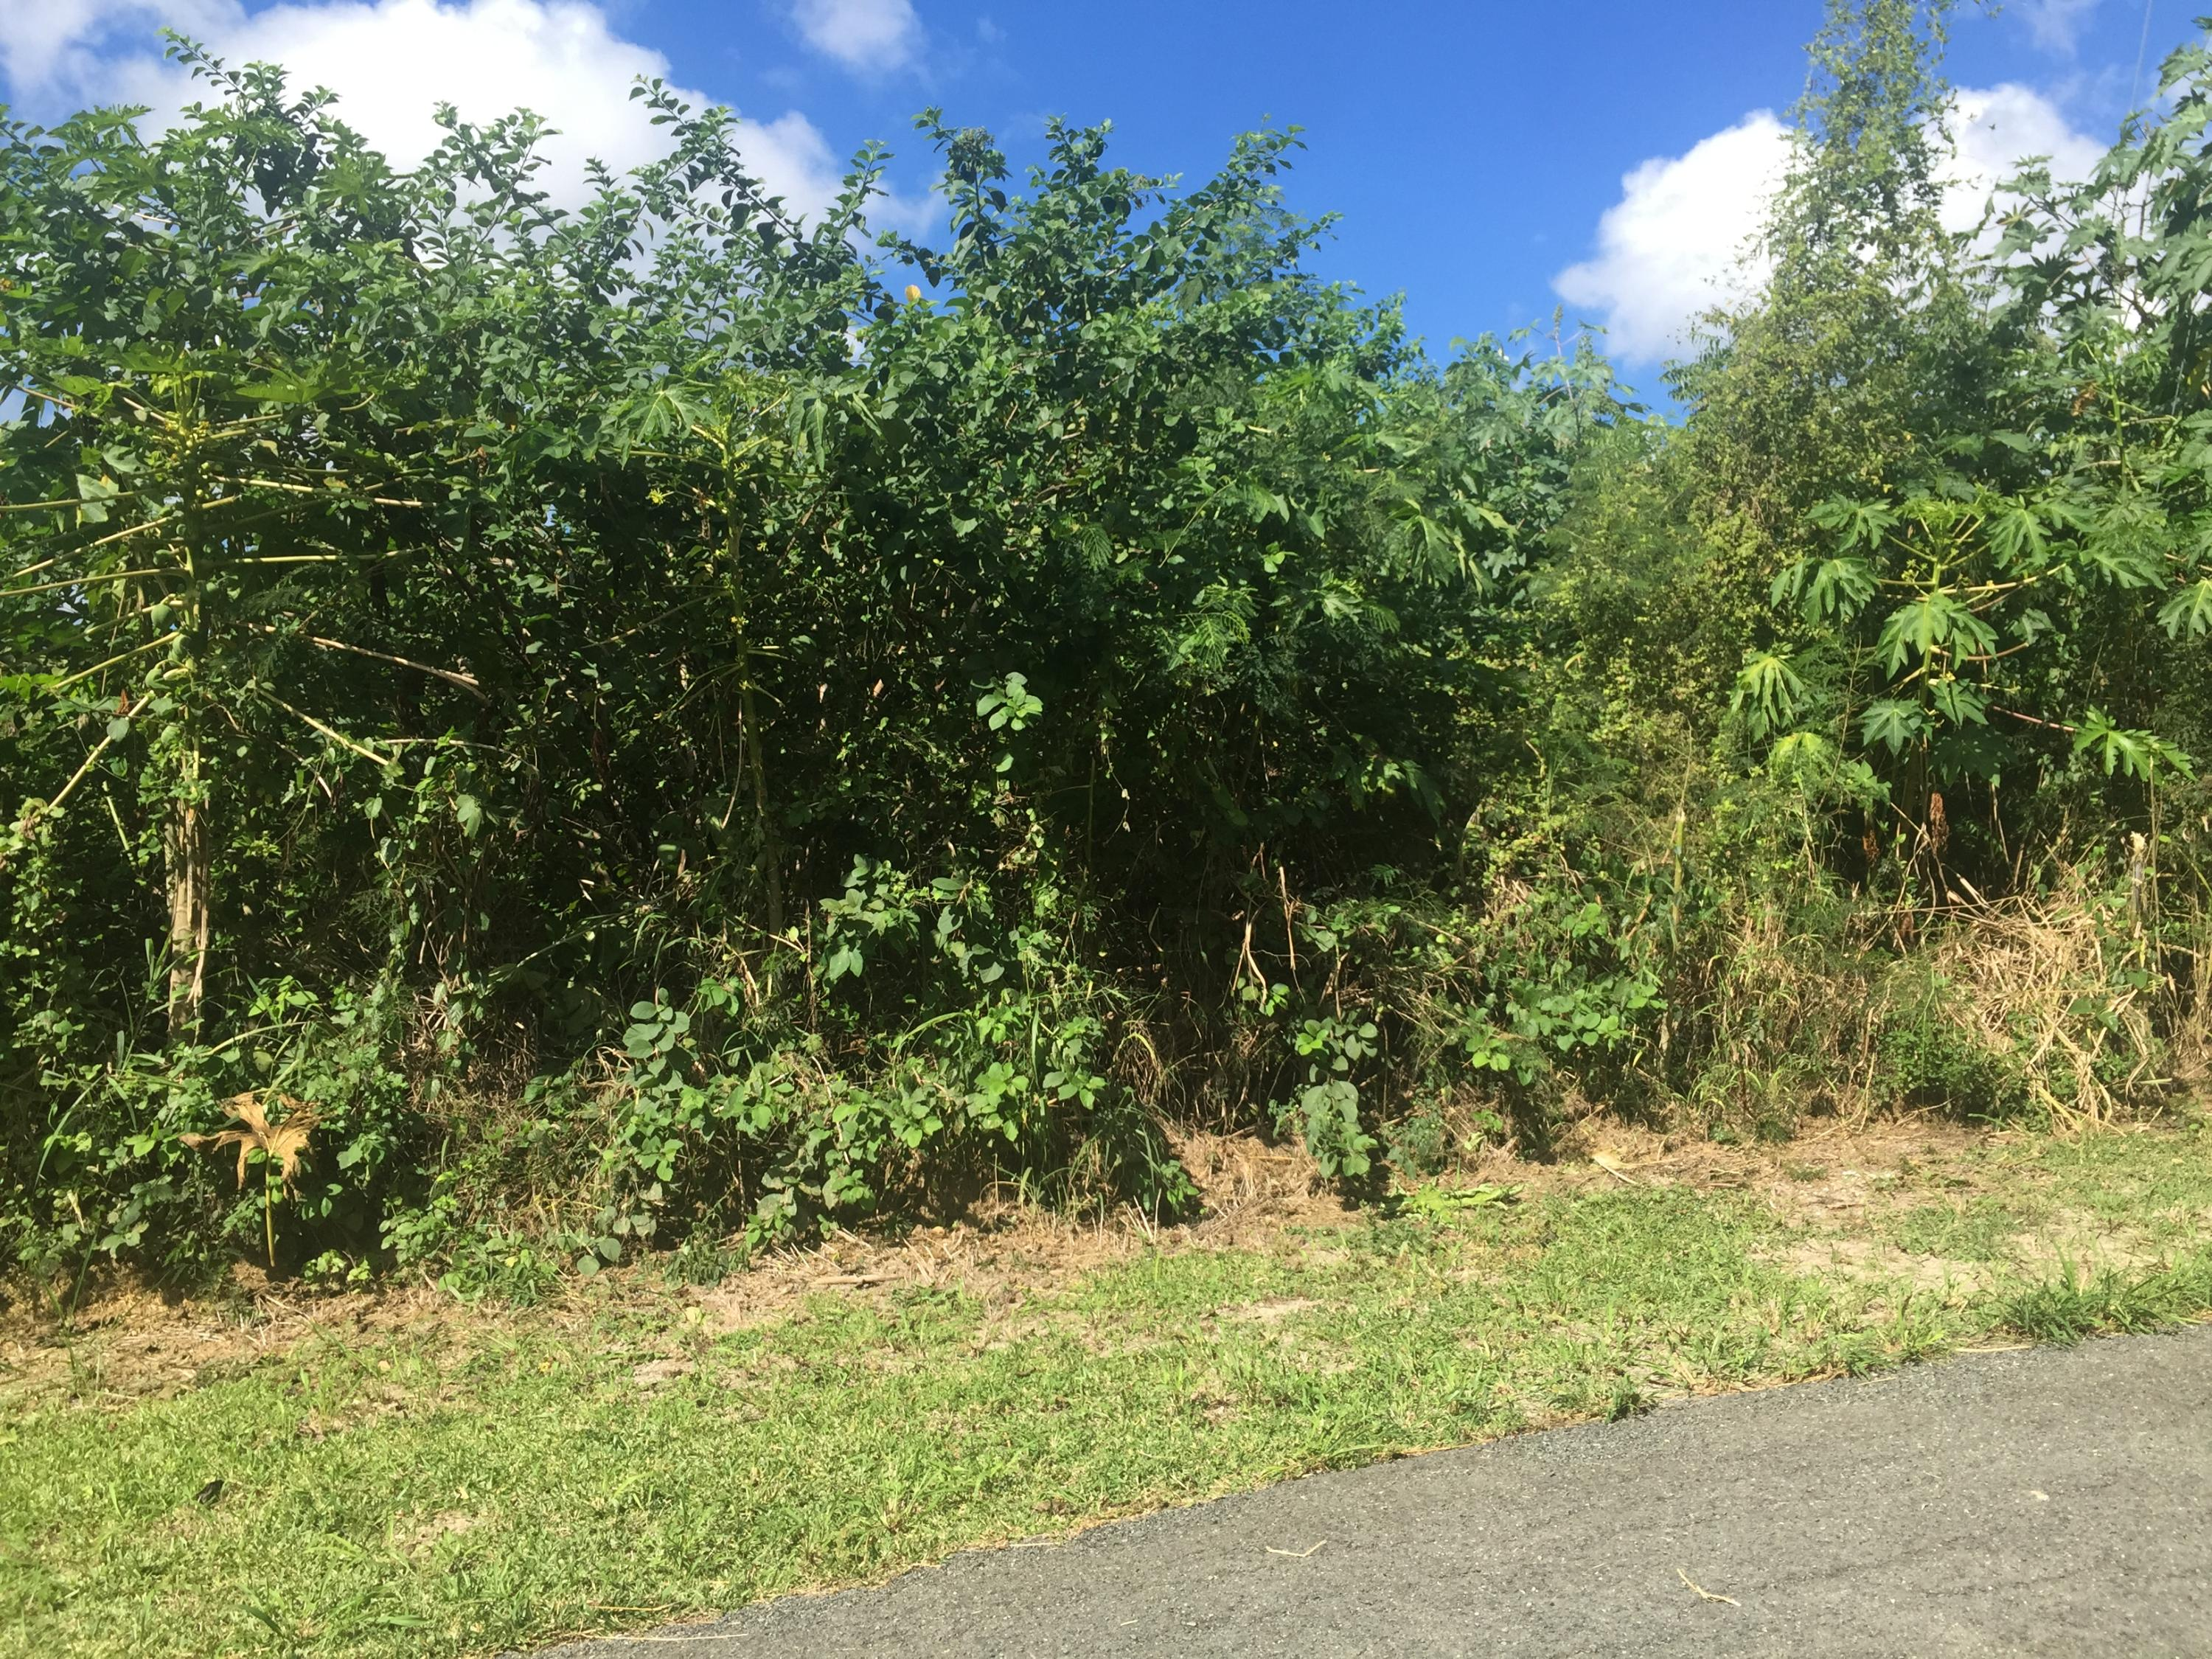 Land for Sale at 214 Mary's Fancy QU 214 Mary's Fancy QU St Croix, Virgin Islands 00820 United States Virgin Islands